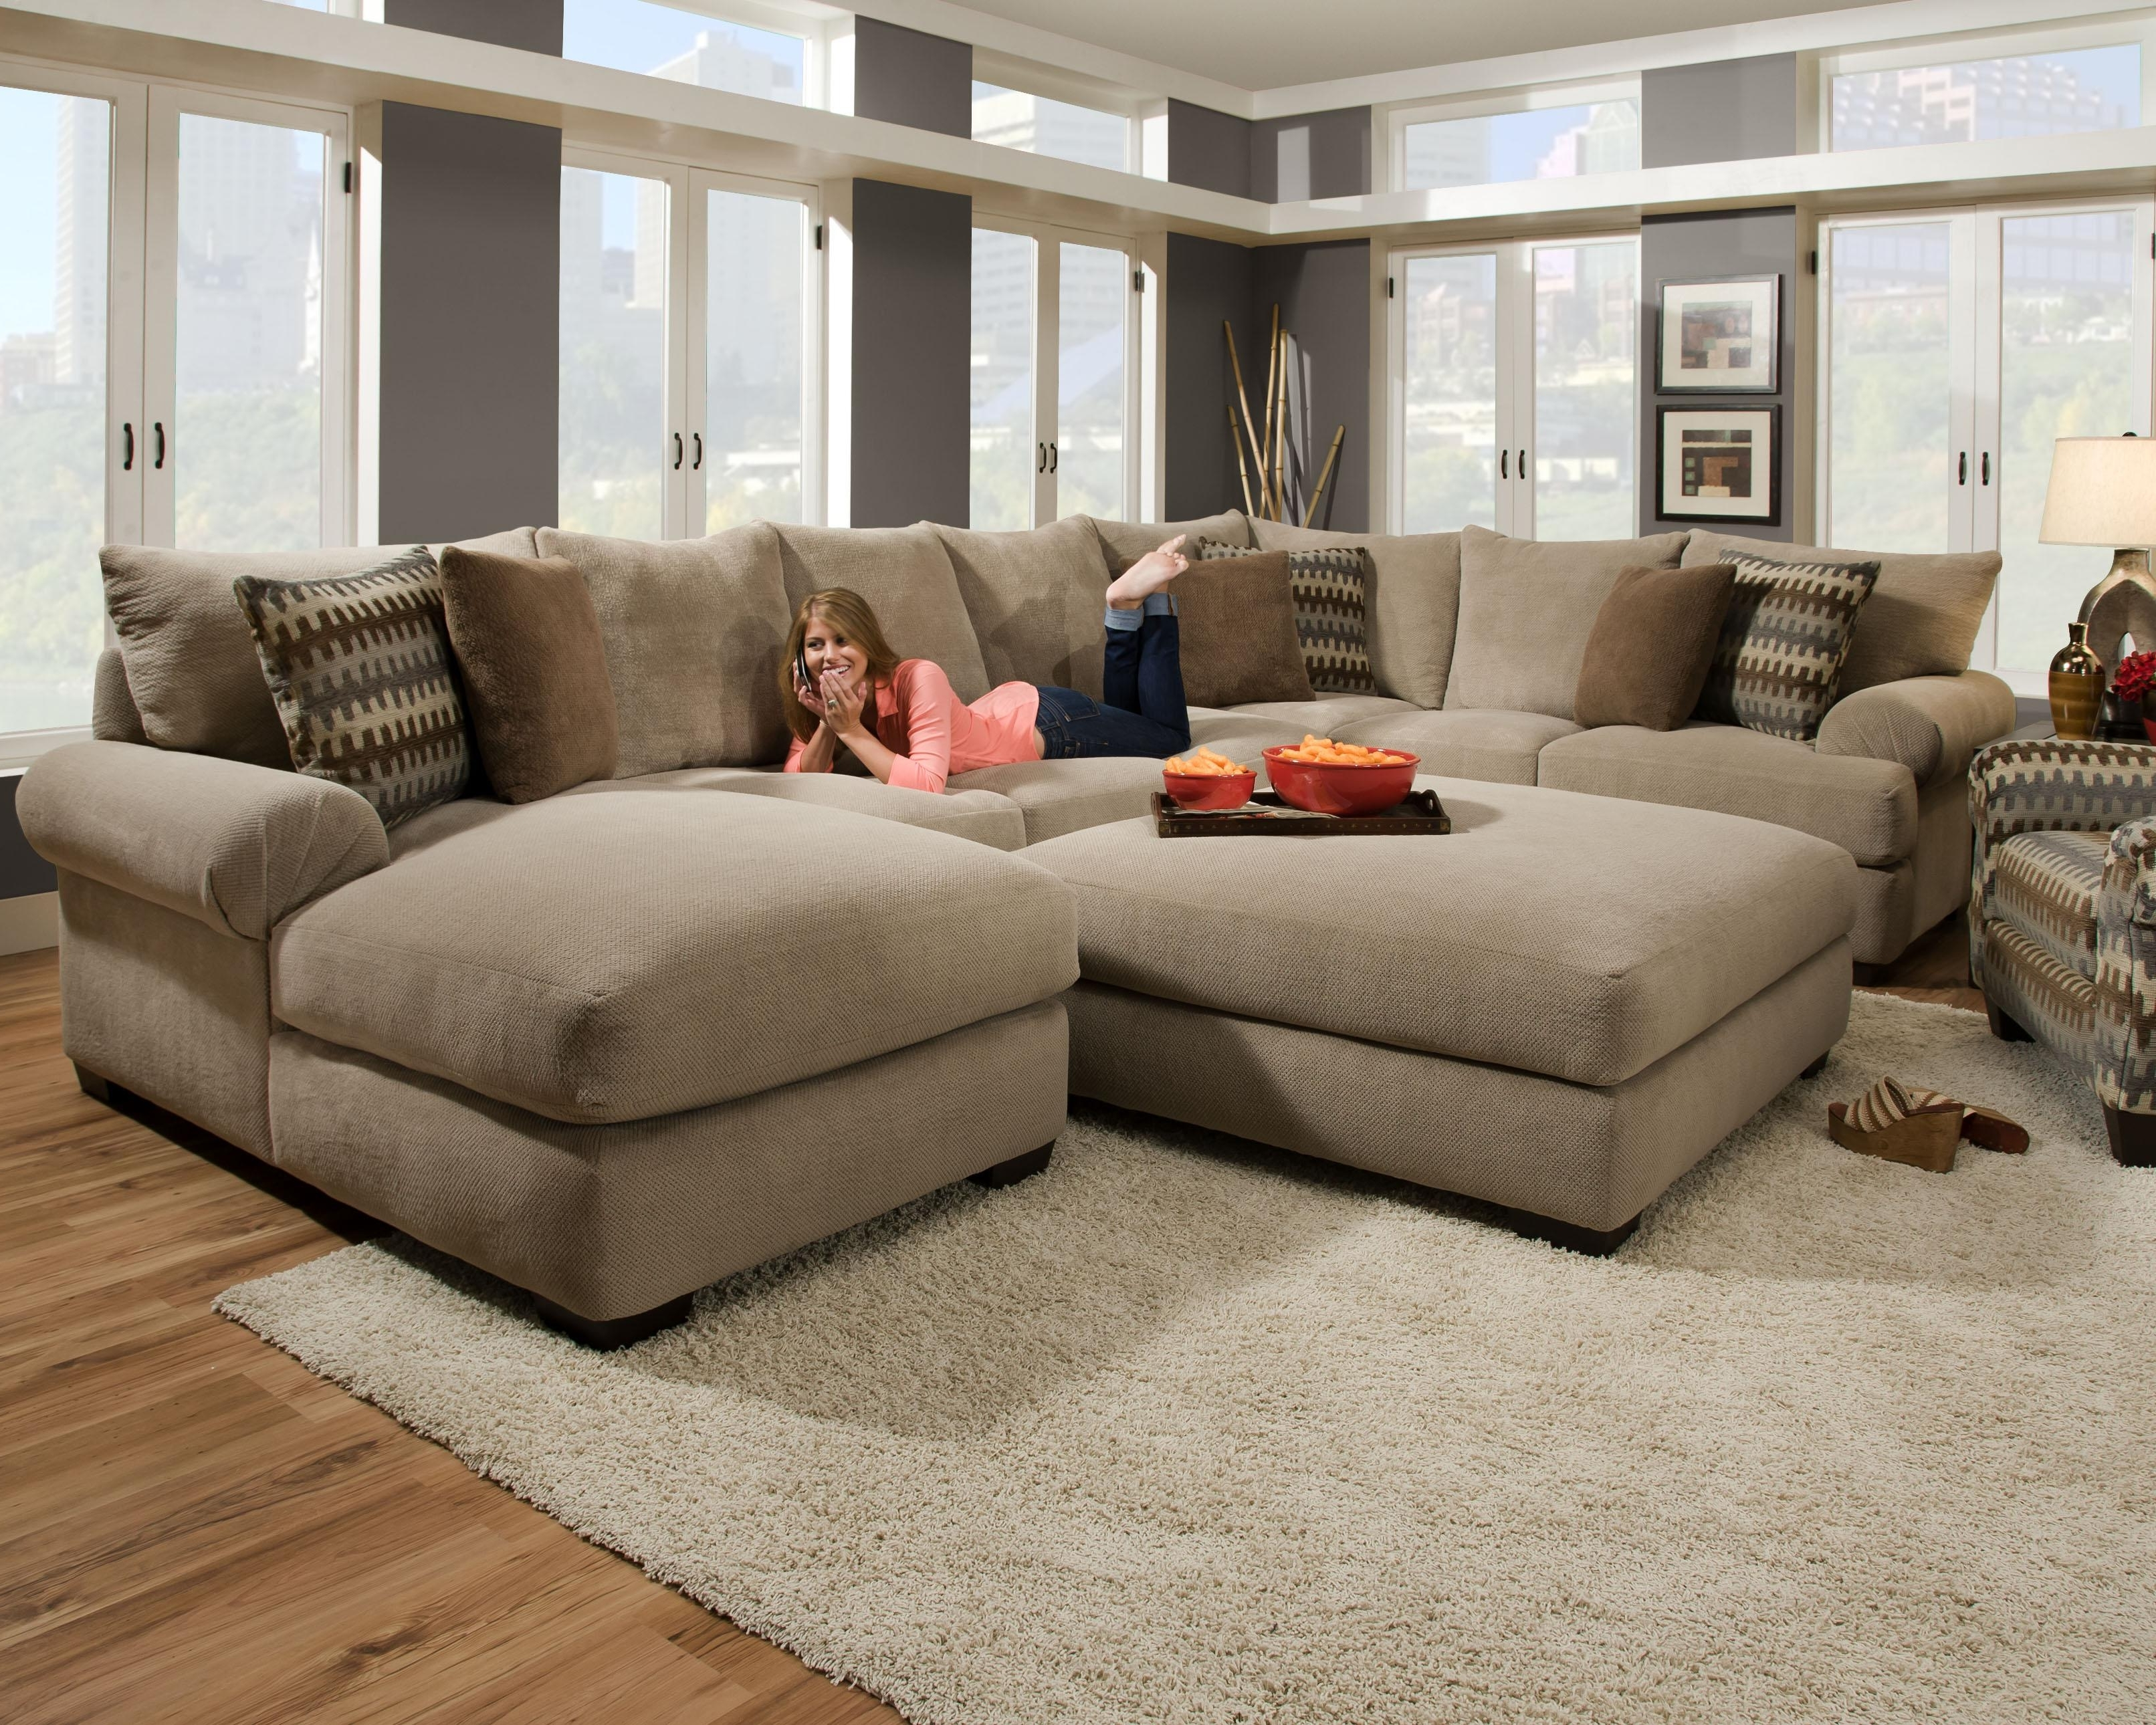 Newest Sofas : Oversized Sofa Cheap Sectional Sofas Chaise Sofa Modular In Sectional Sofas With Ottoman (View 8 of 20)